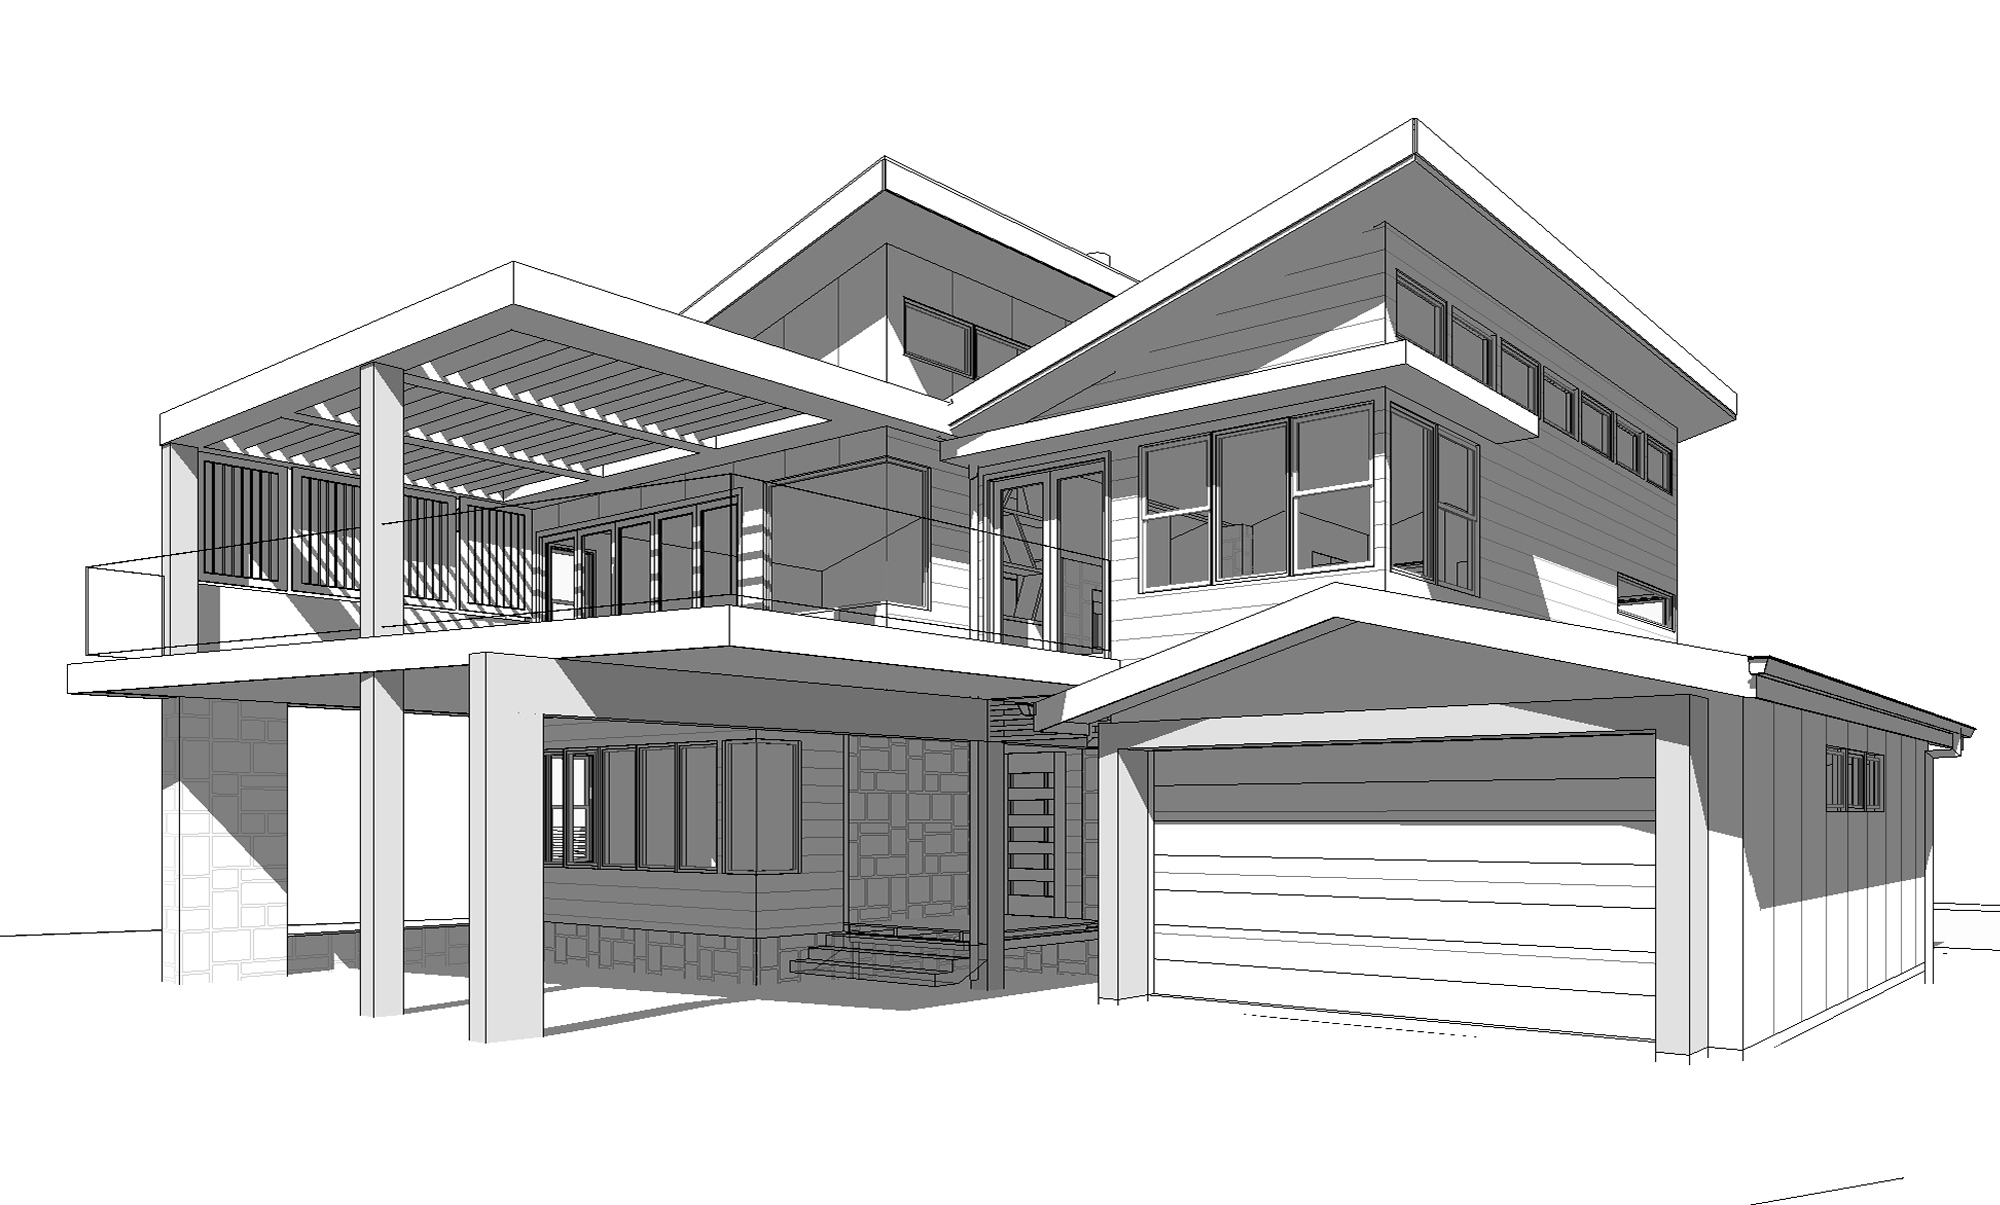 Architecture design drawing building architectural drawing for Architectural design house plans